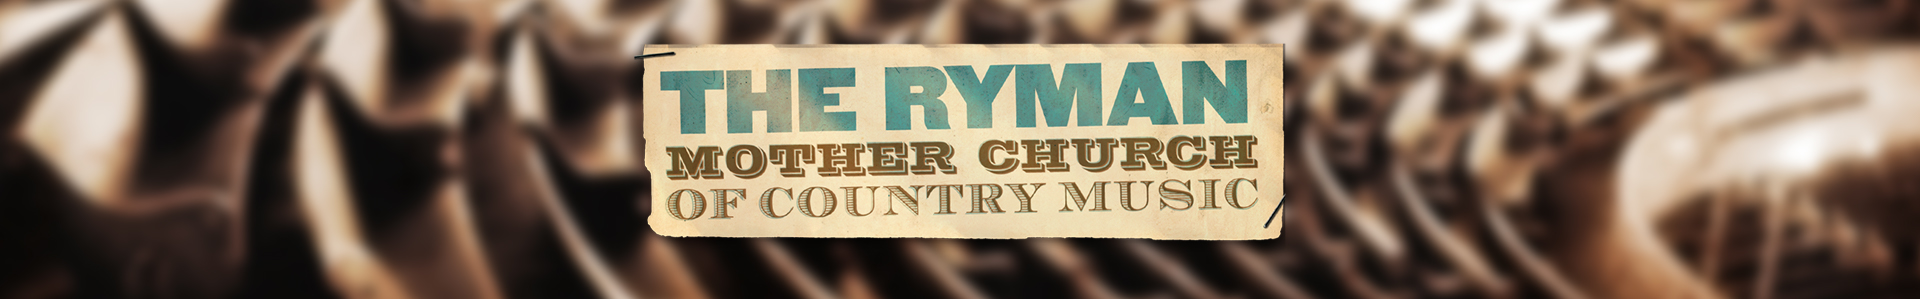 The Ryman: Mother Church of Country Music